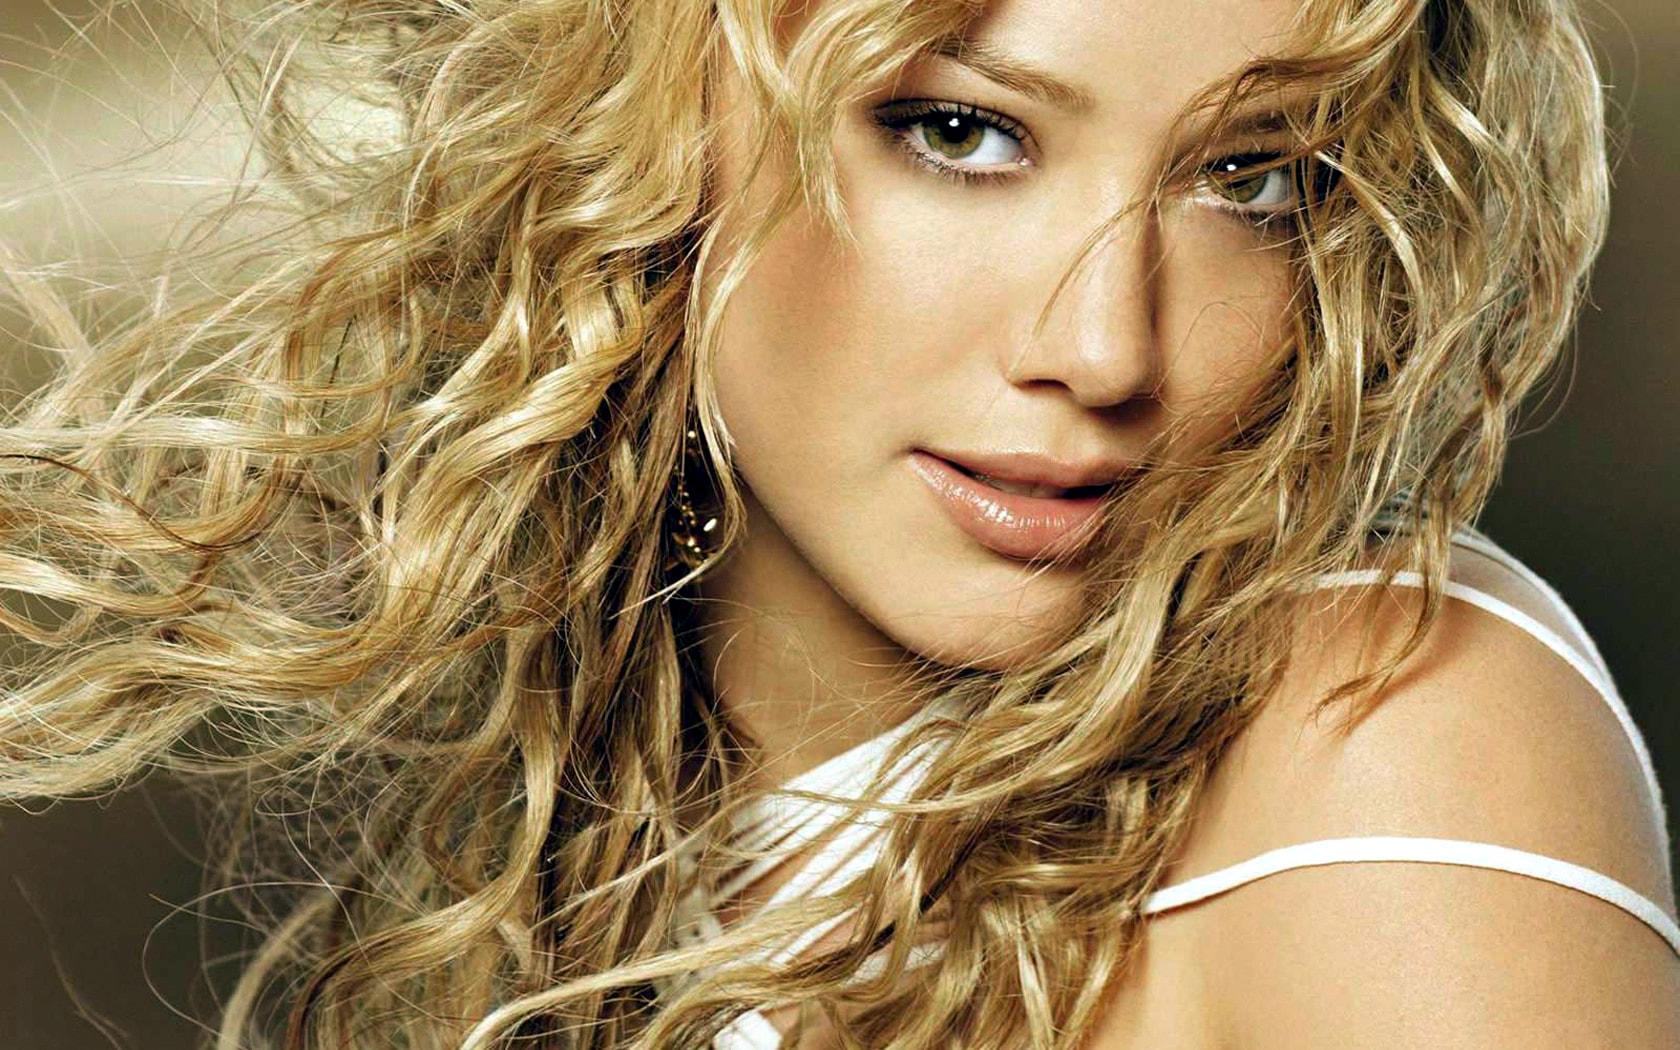 Hilary Duff Wallpapers hd